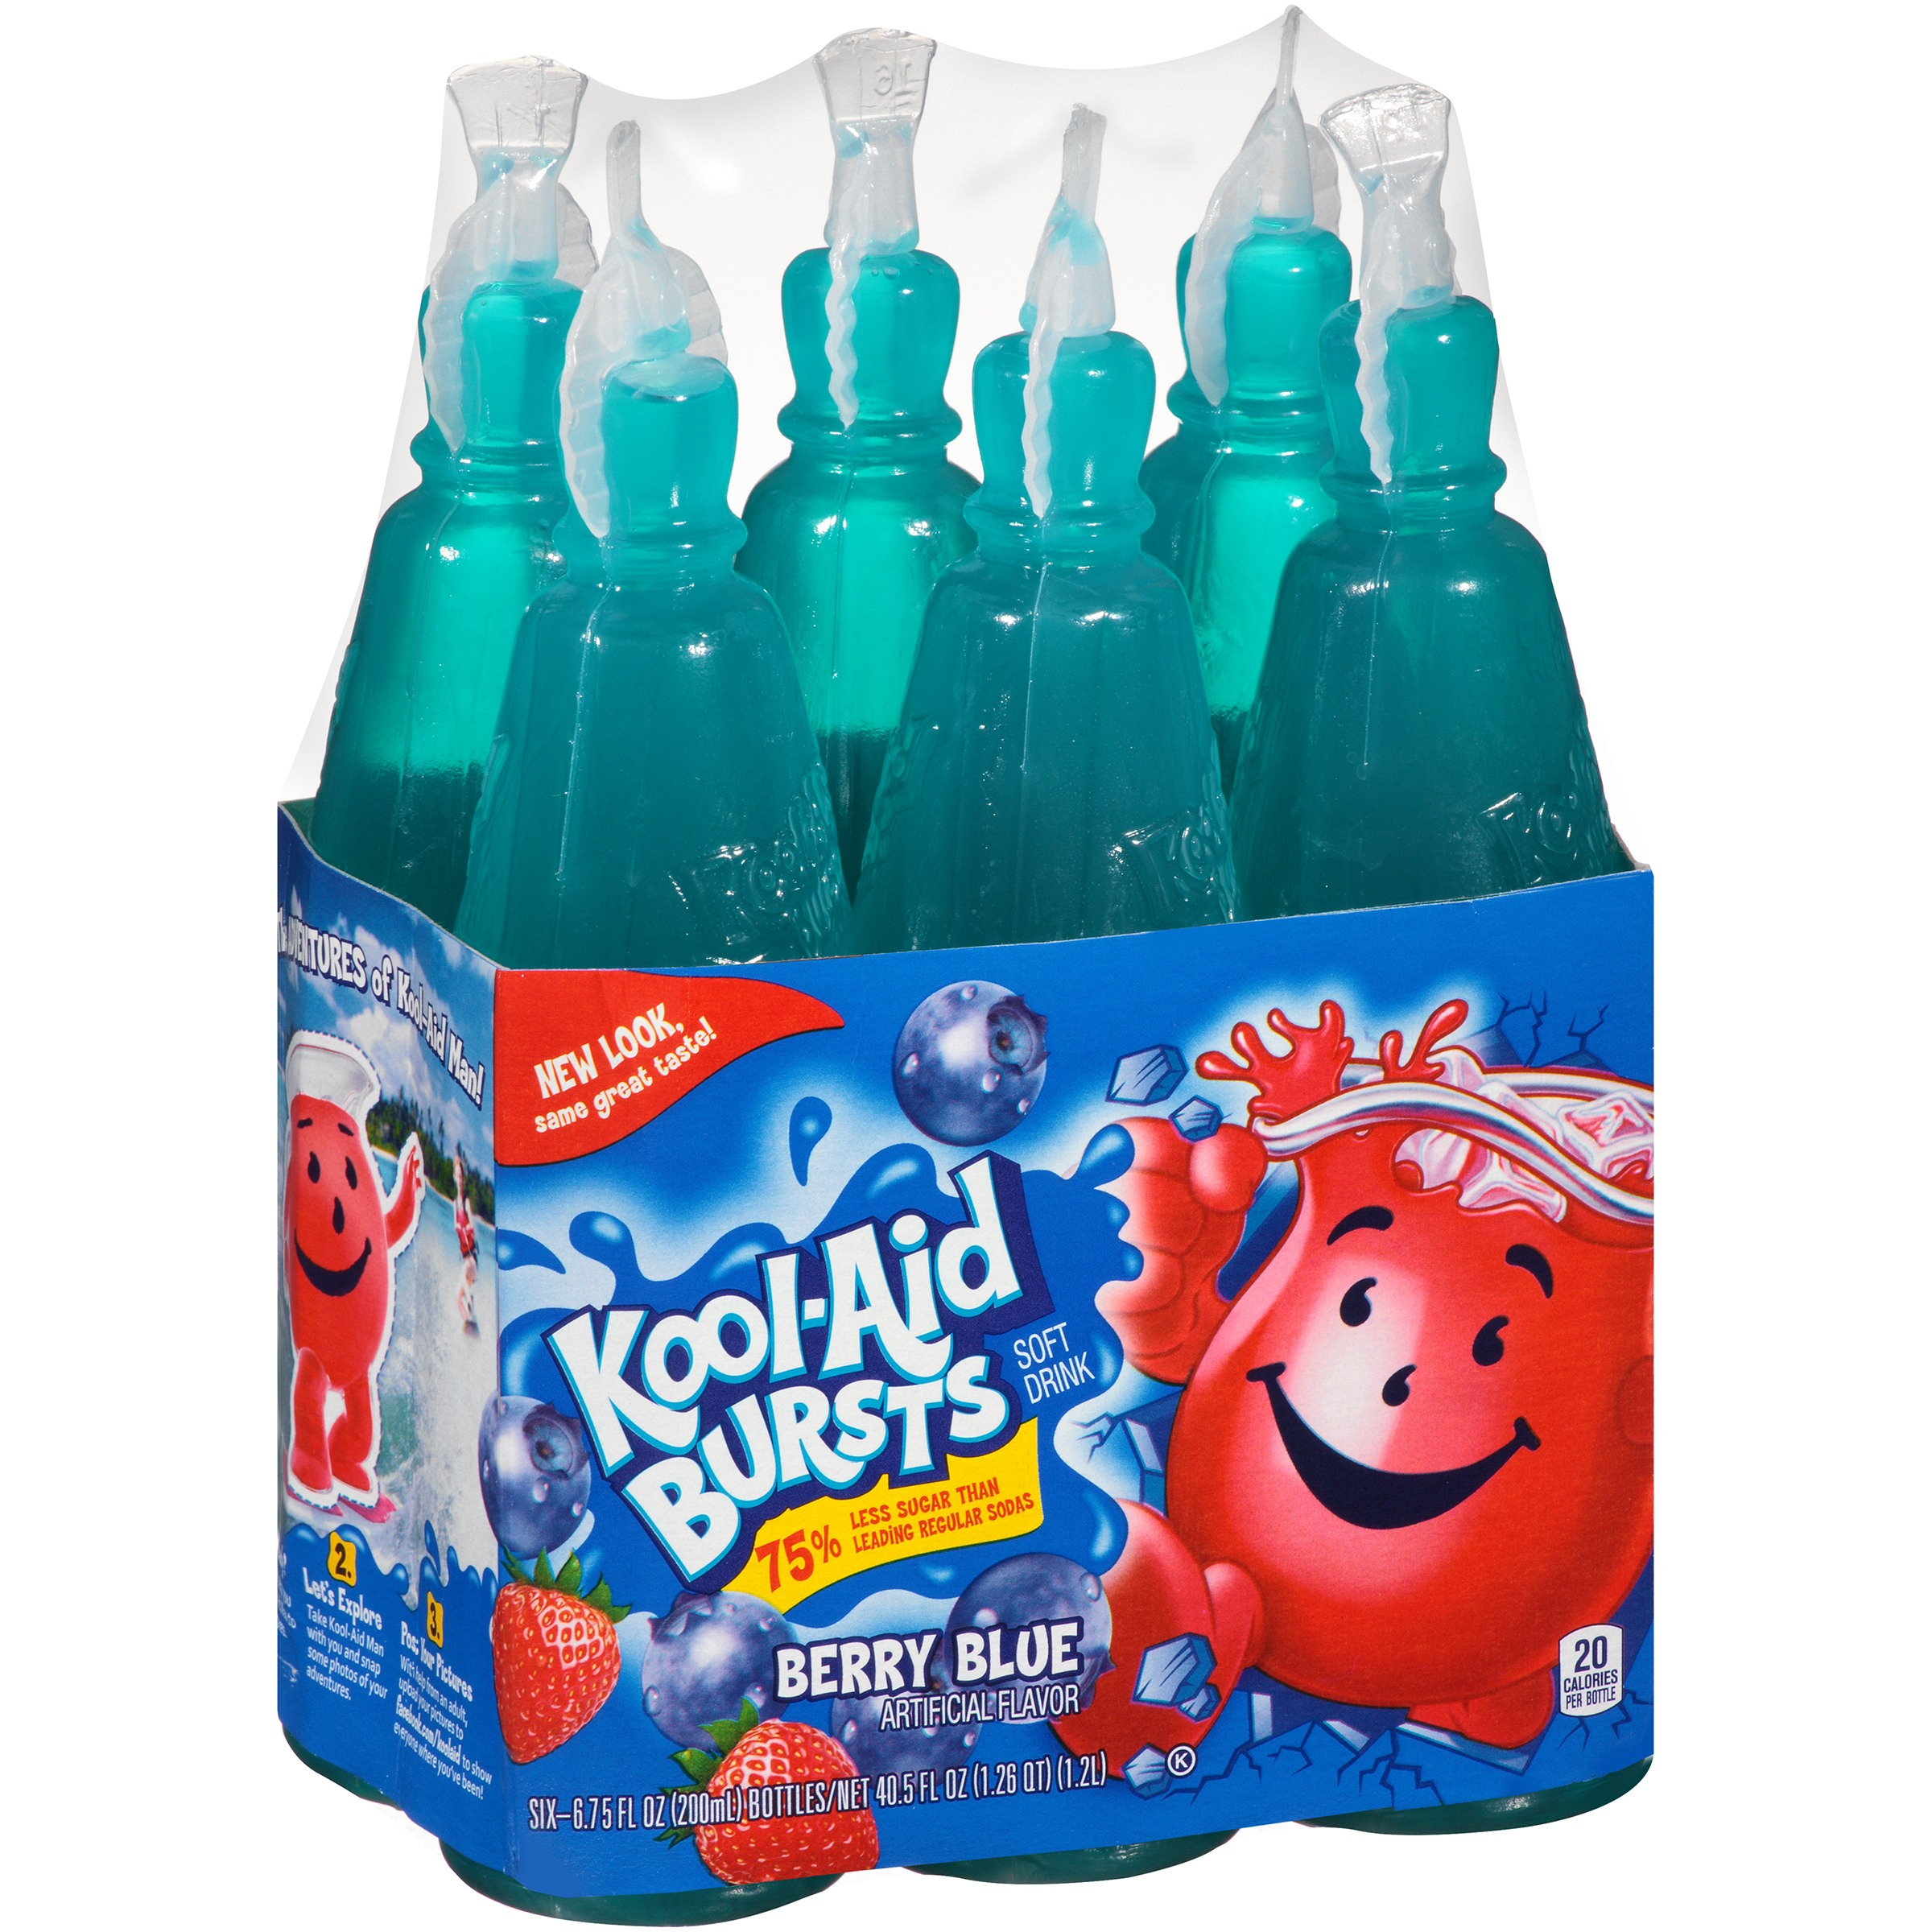 Kool Aid Bursts Fruit Juice Berry Blue 6 75 Fl Oz 6